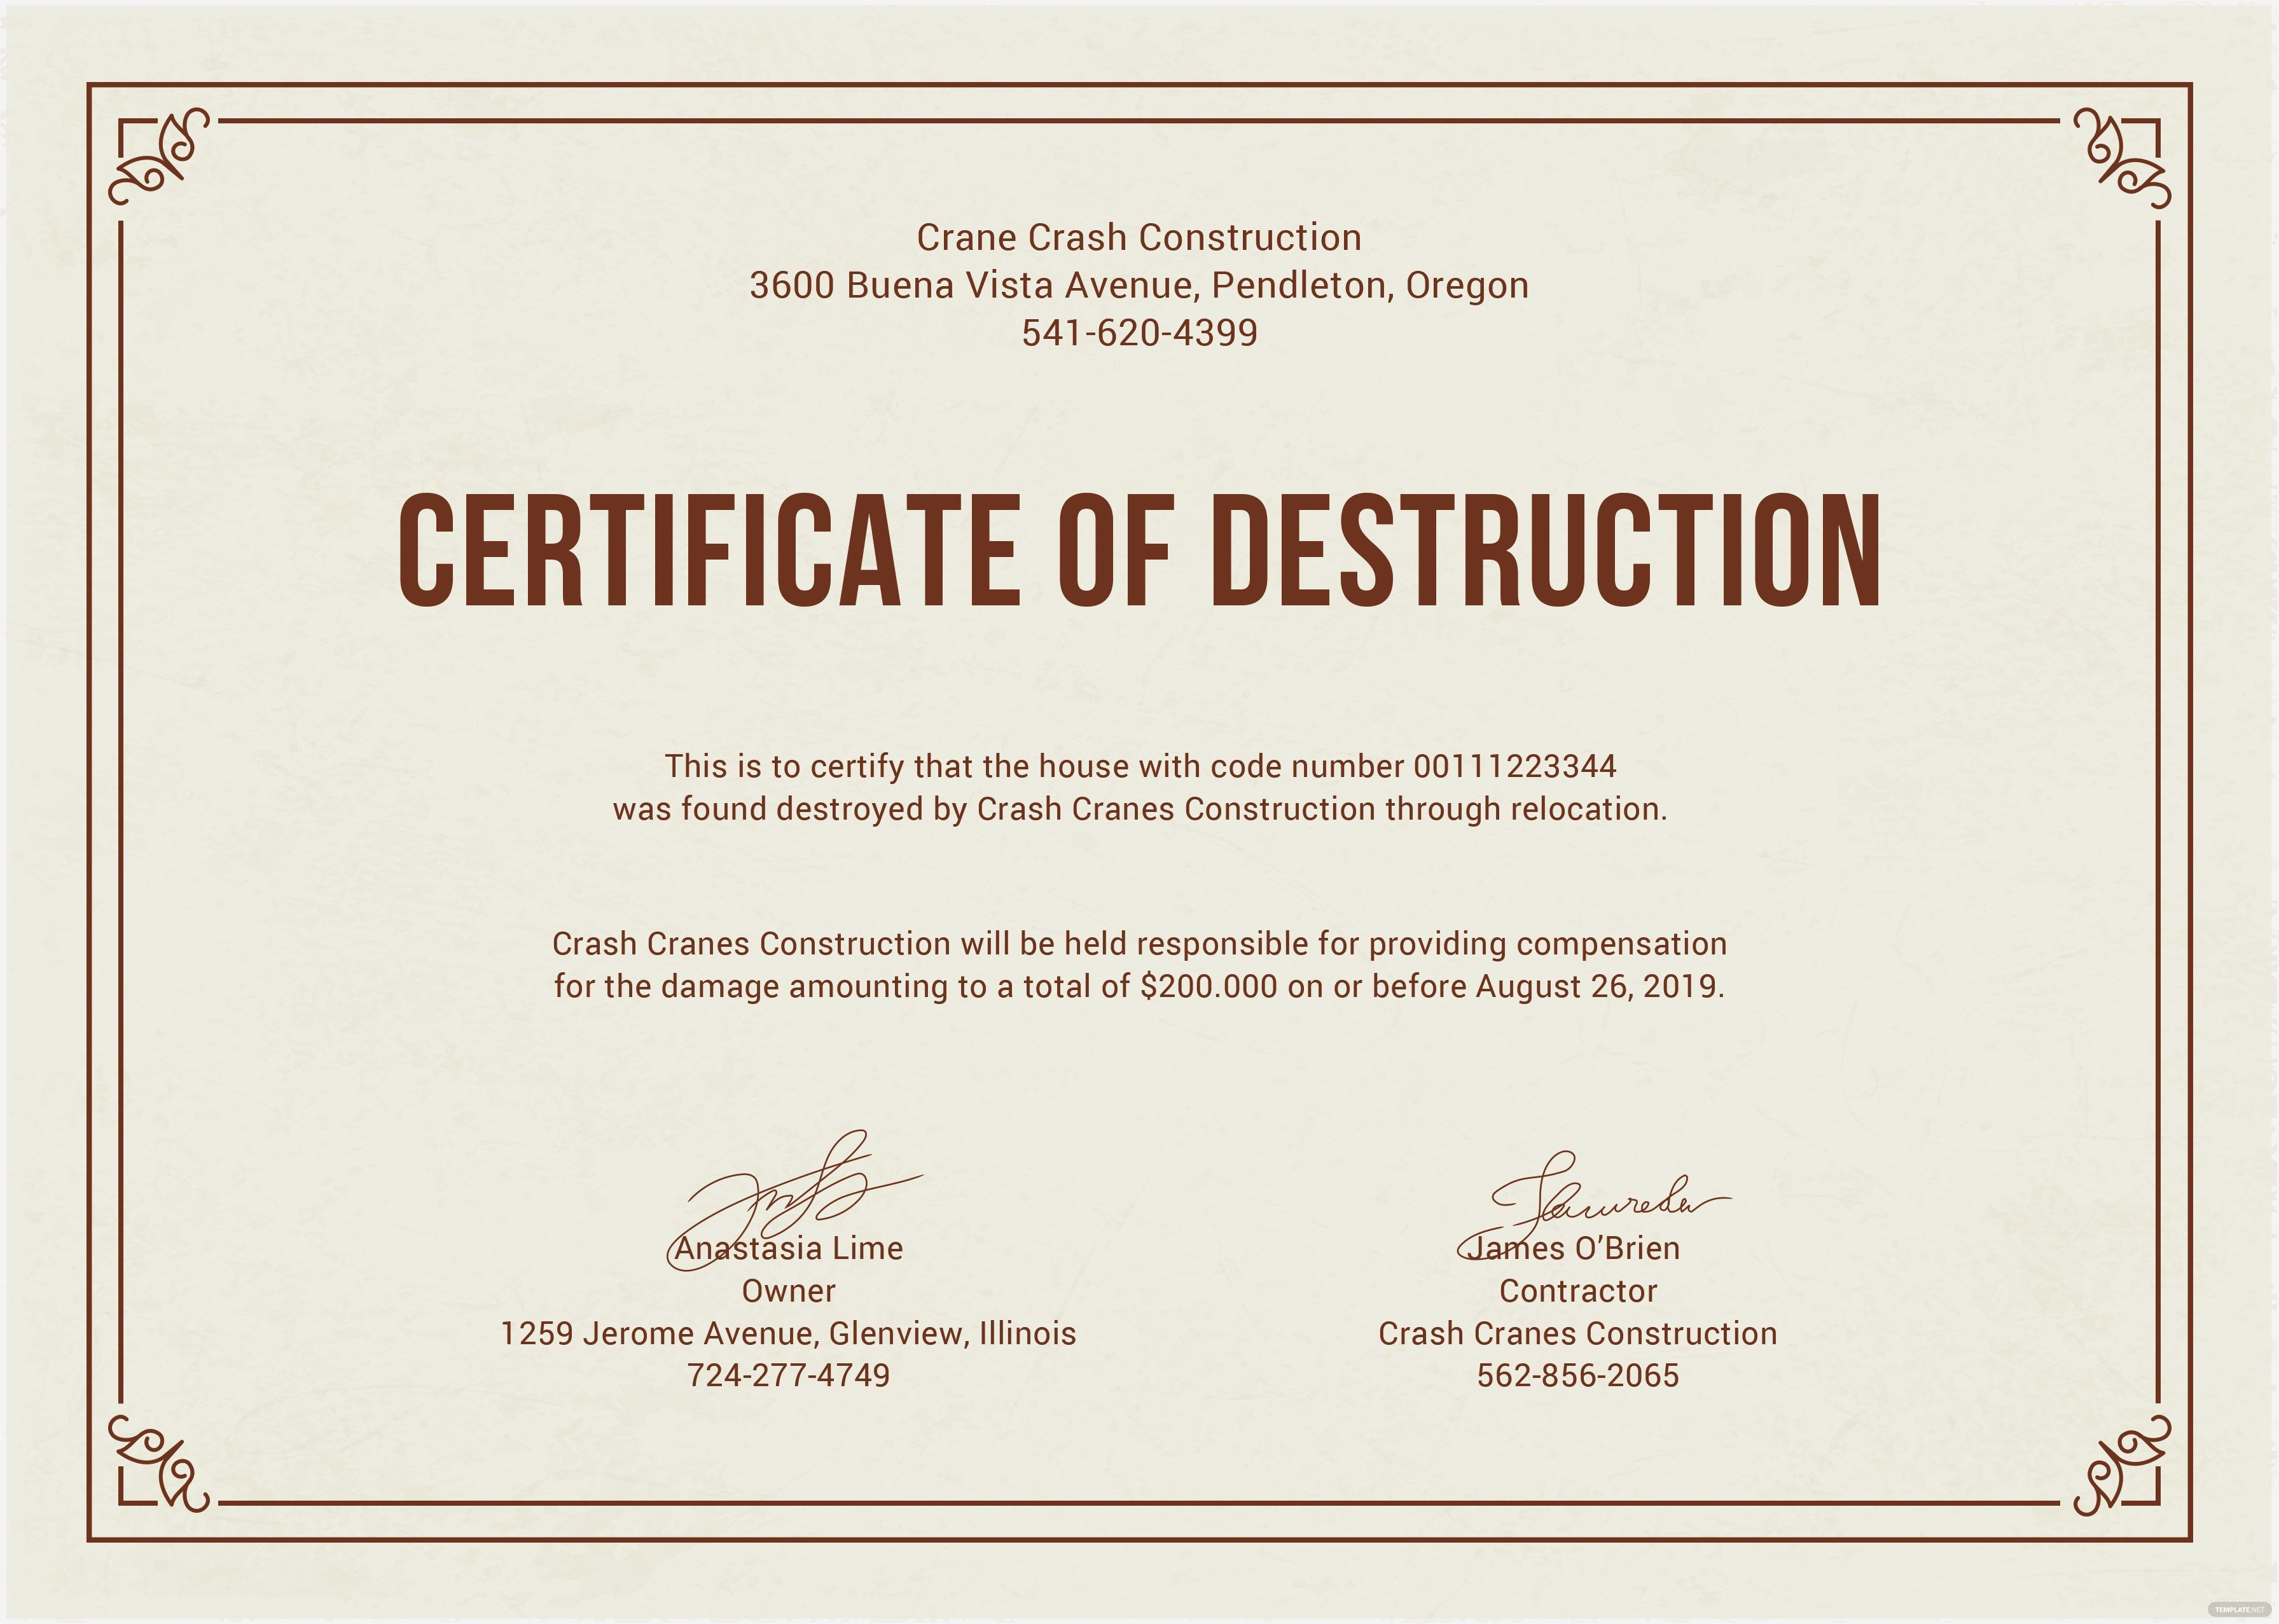 Certificate Of Destruction Template Free Certificate Of Destruction Template In Adobe